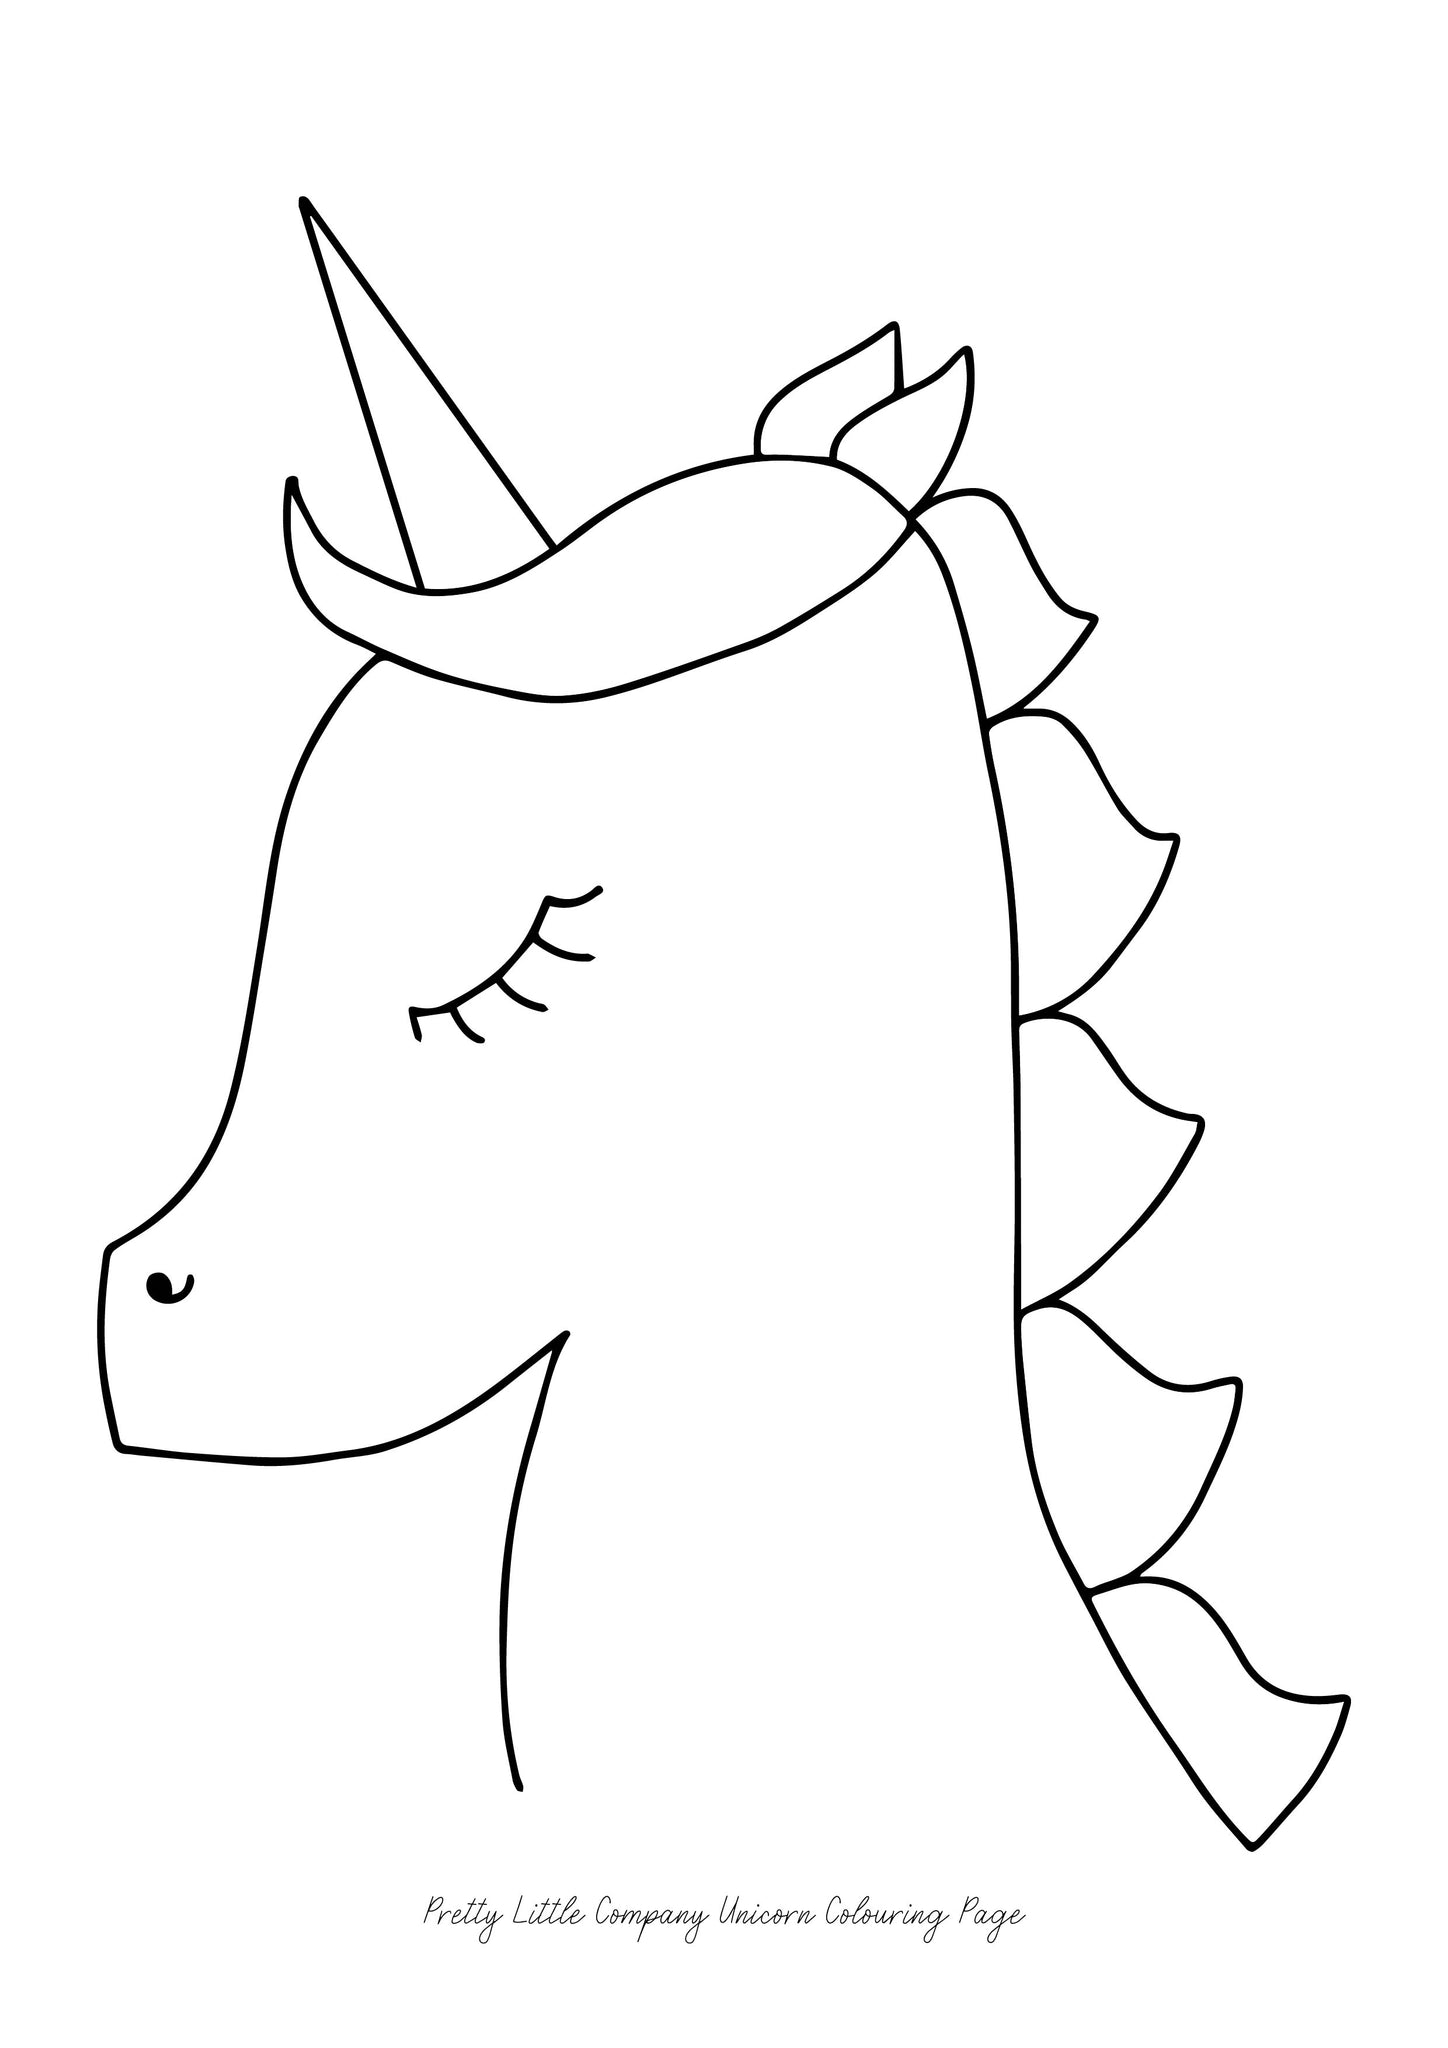 Unicorn Colouring Page - Free Download